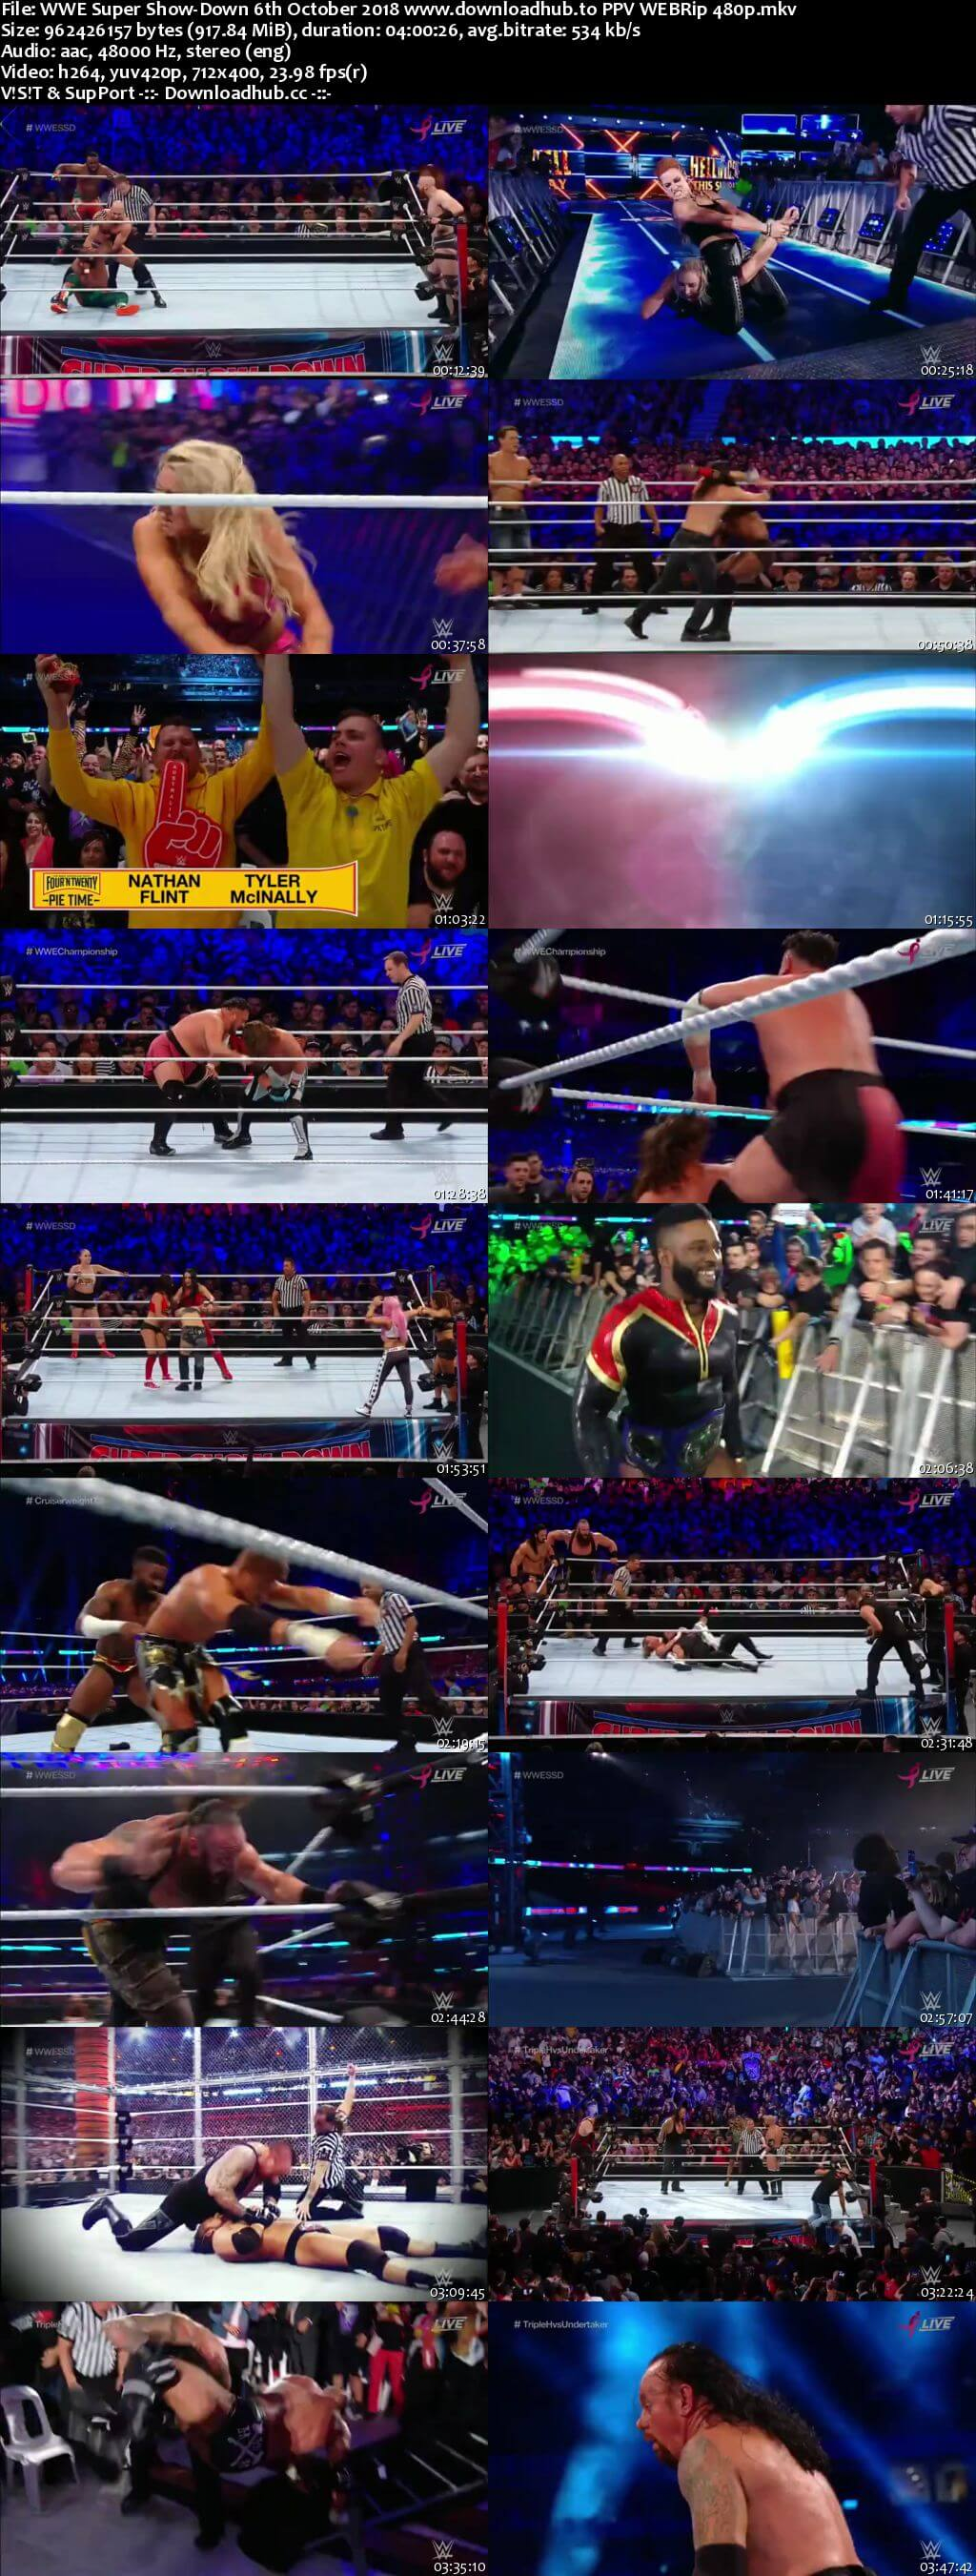 WWE Super Show Down 6th October 2018 900MB PPV WEBRip 480p